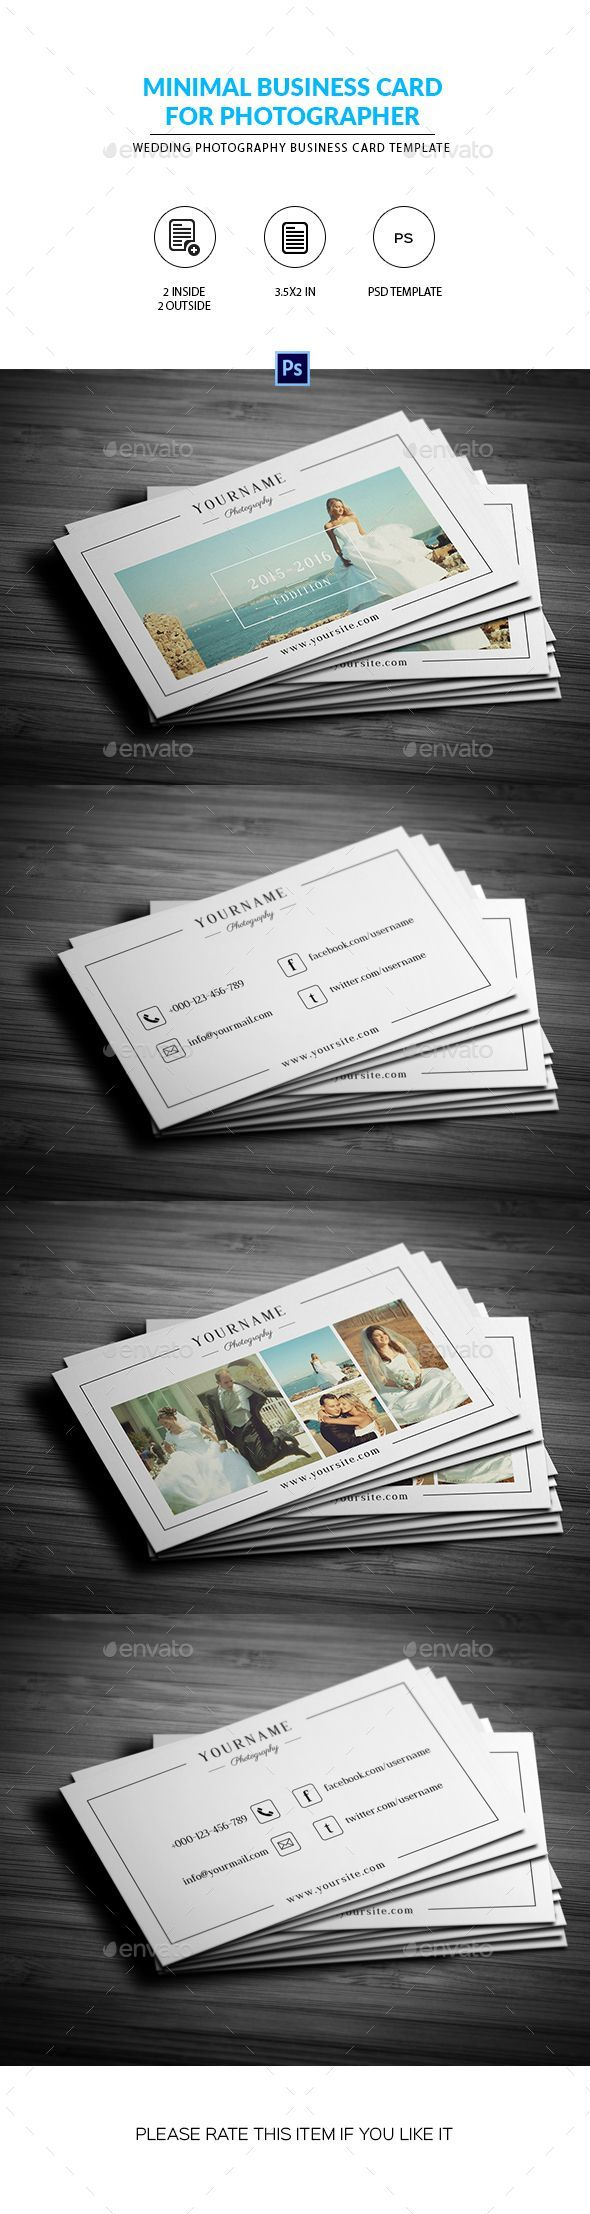 1537 best perfect paper business cards arc reactions images on 1537 best perfect paper business cards arc reactions images on pinterest business card design creative business cards and business cards alramifo Gallery